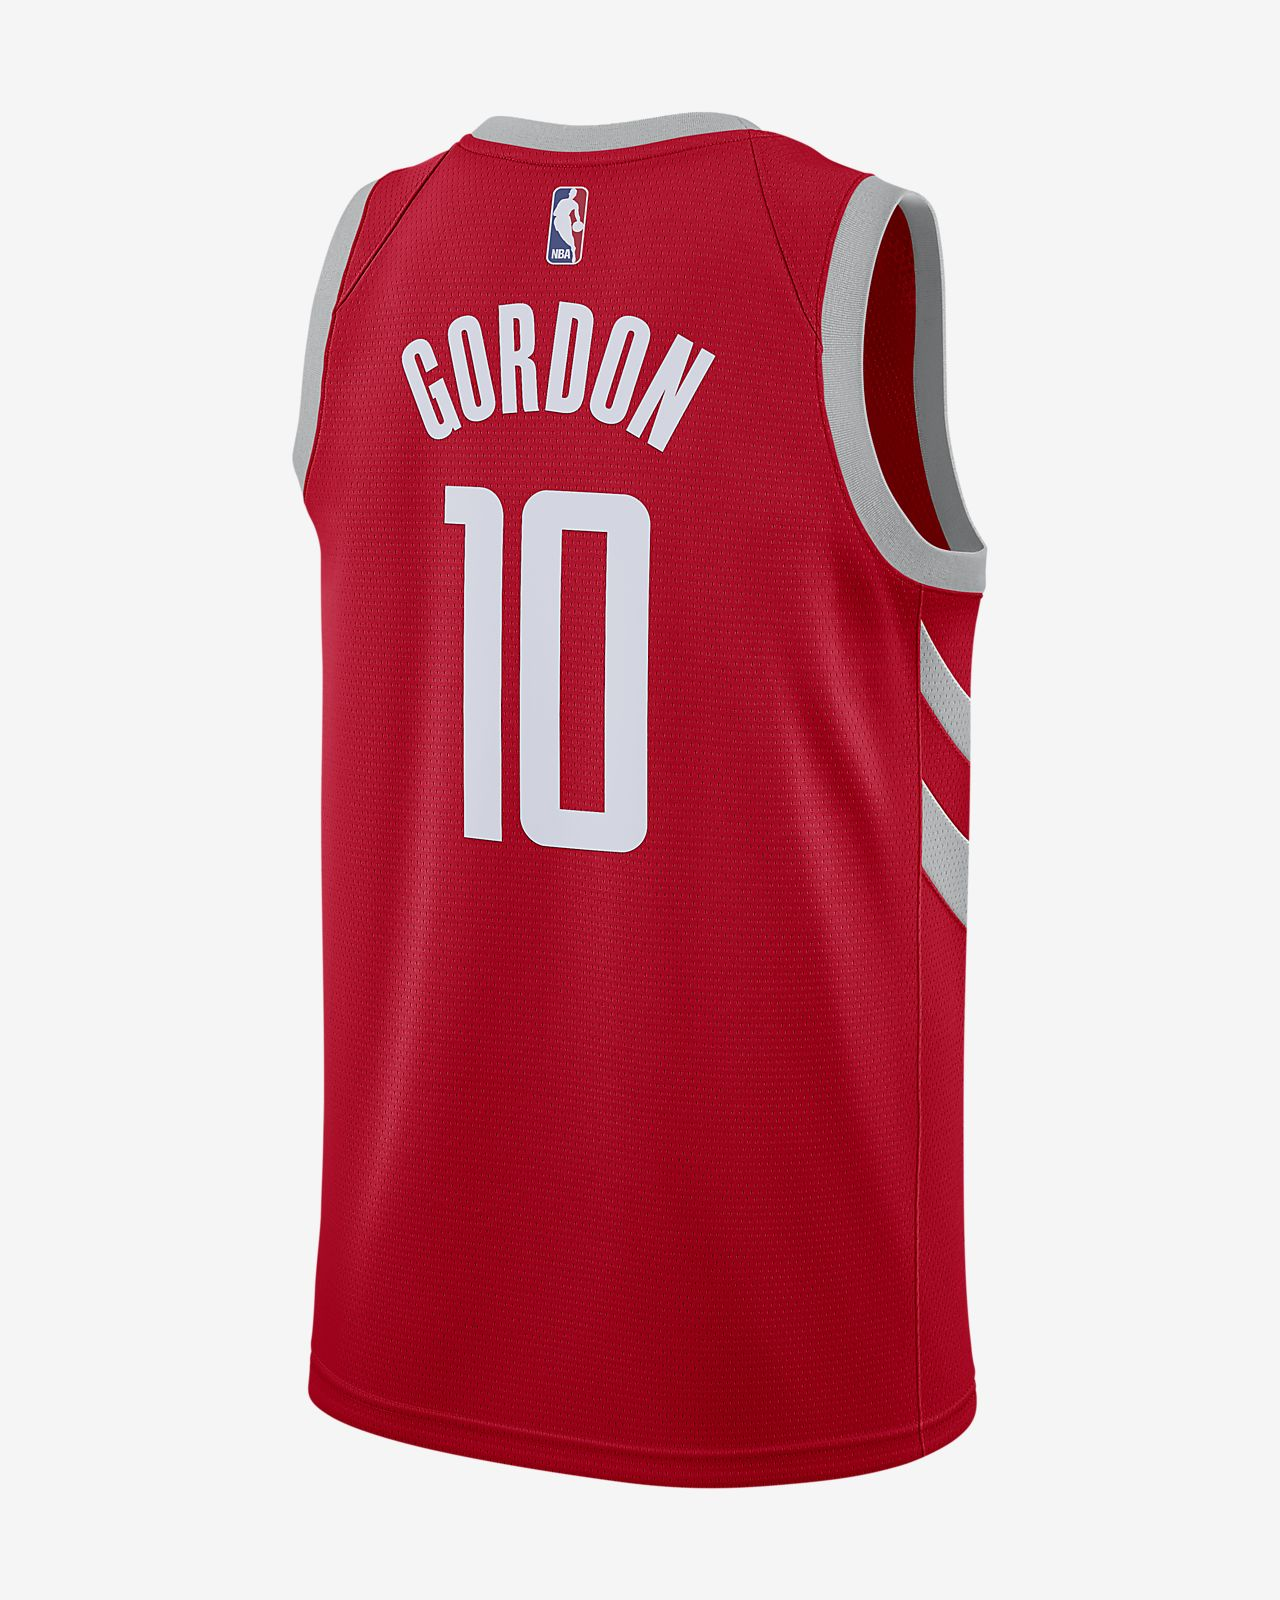 b98e3640ef9 Men s Nike NBA Connected Jersey. Eric Gordon Icon Edition Swingman (Houston  Rockets)